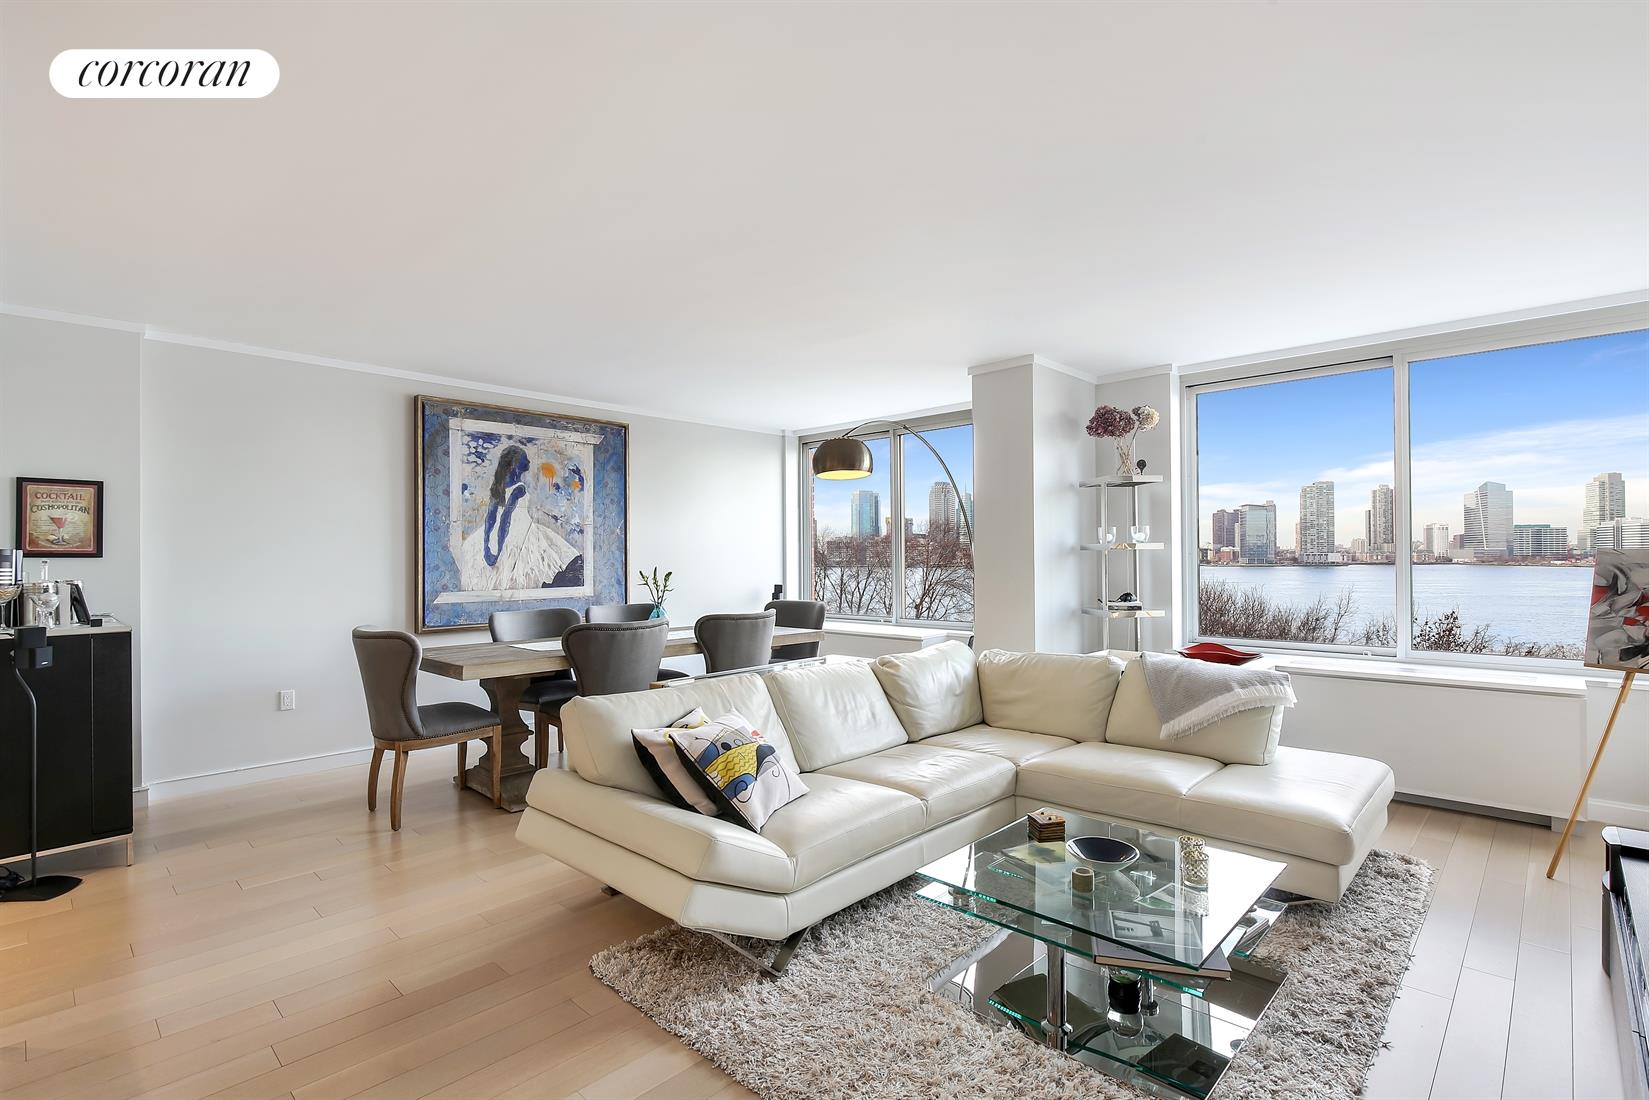 212 WARREN ST, 5G, Living Room/Dining Room with Direct River Views